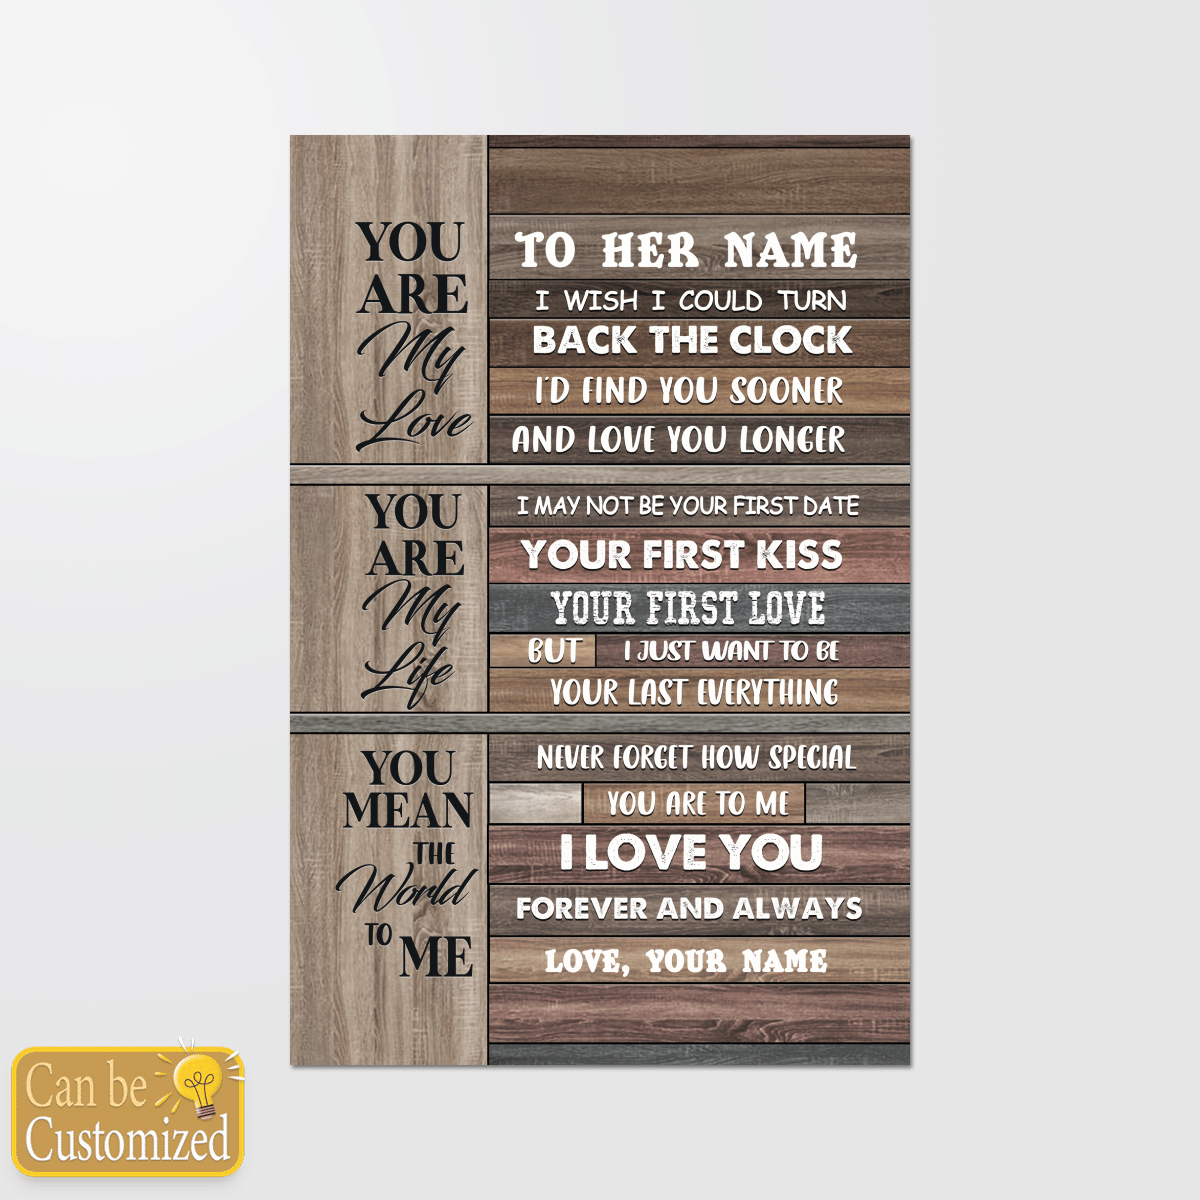 Youre my love youre my life you mean the world to me custom name poster and canvas 2